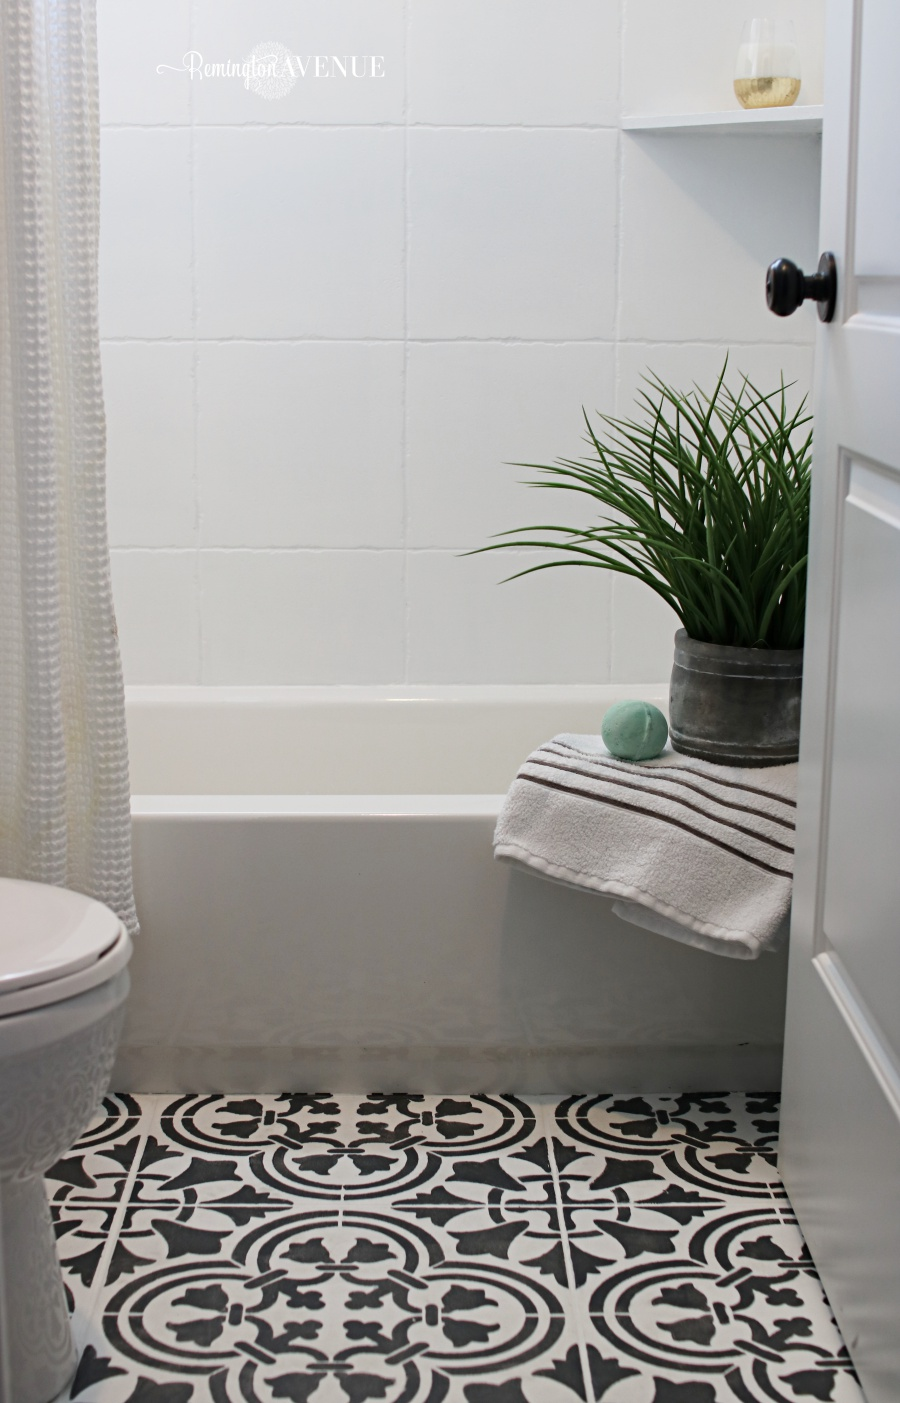 Washroom Tiles How To Paint Shower Tile Remington Avenue